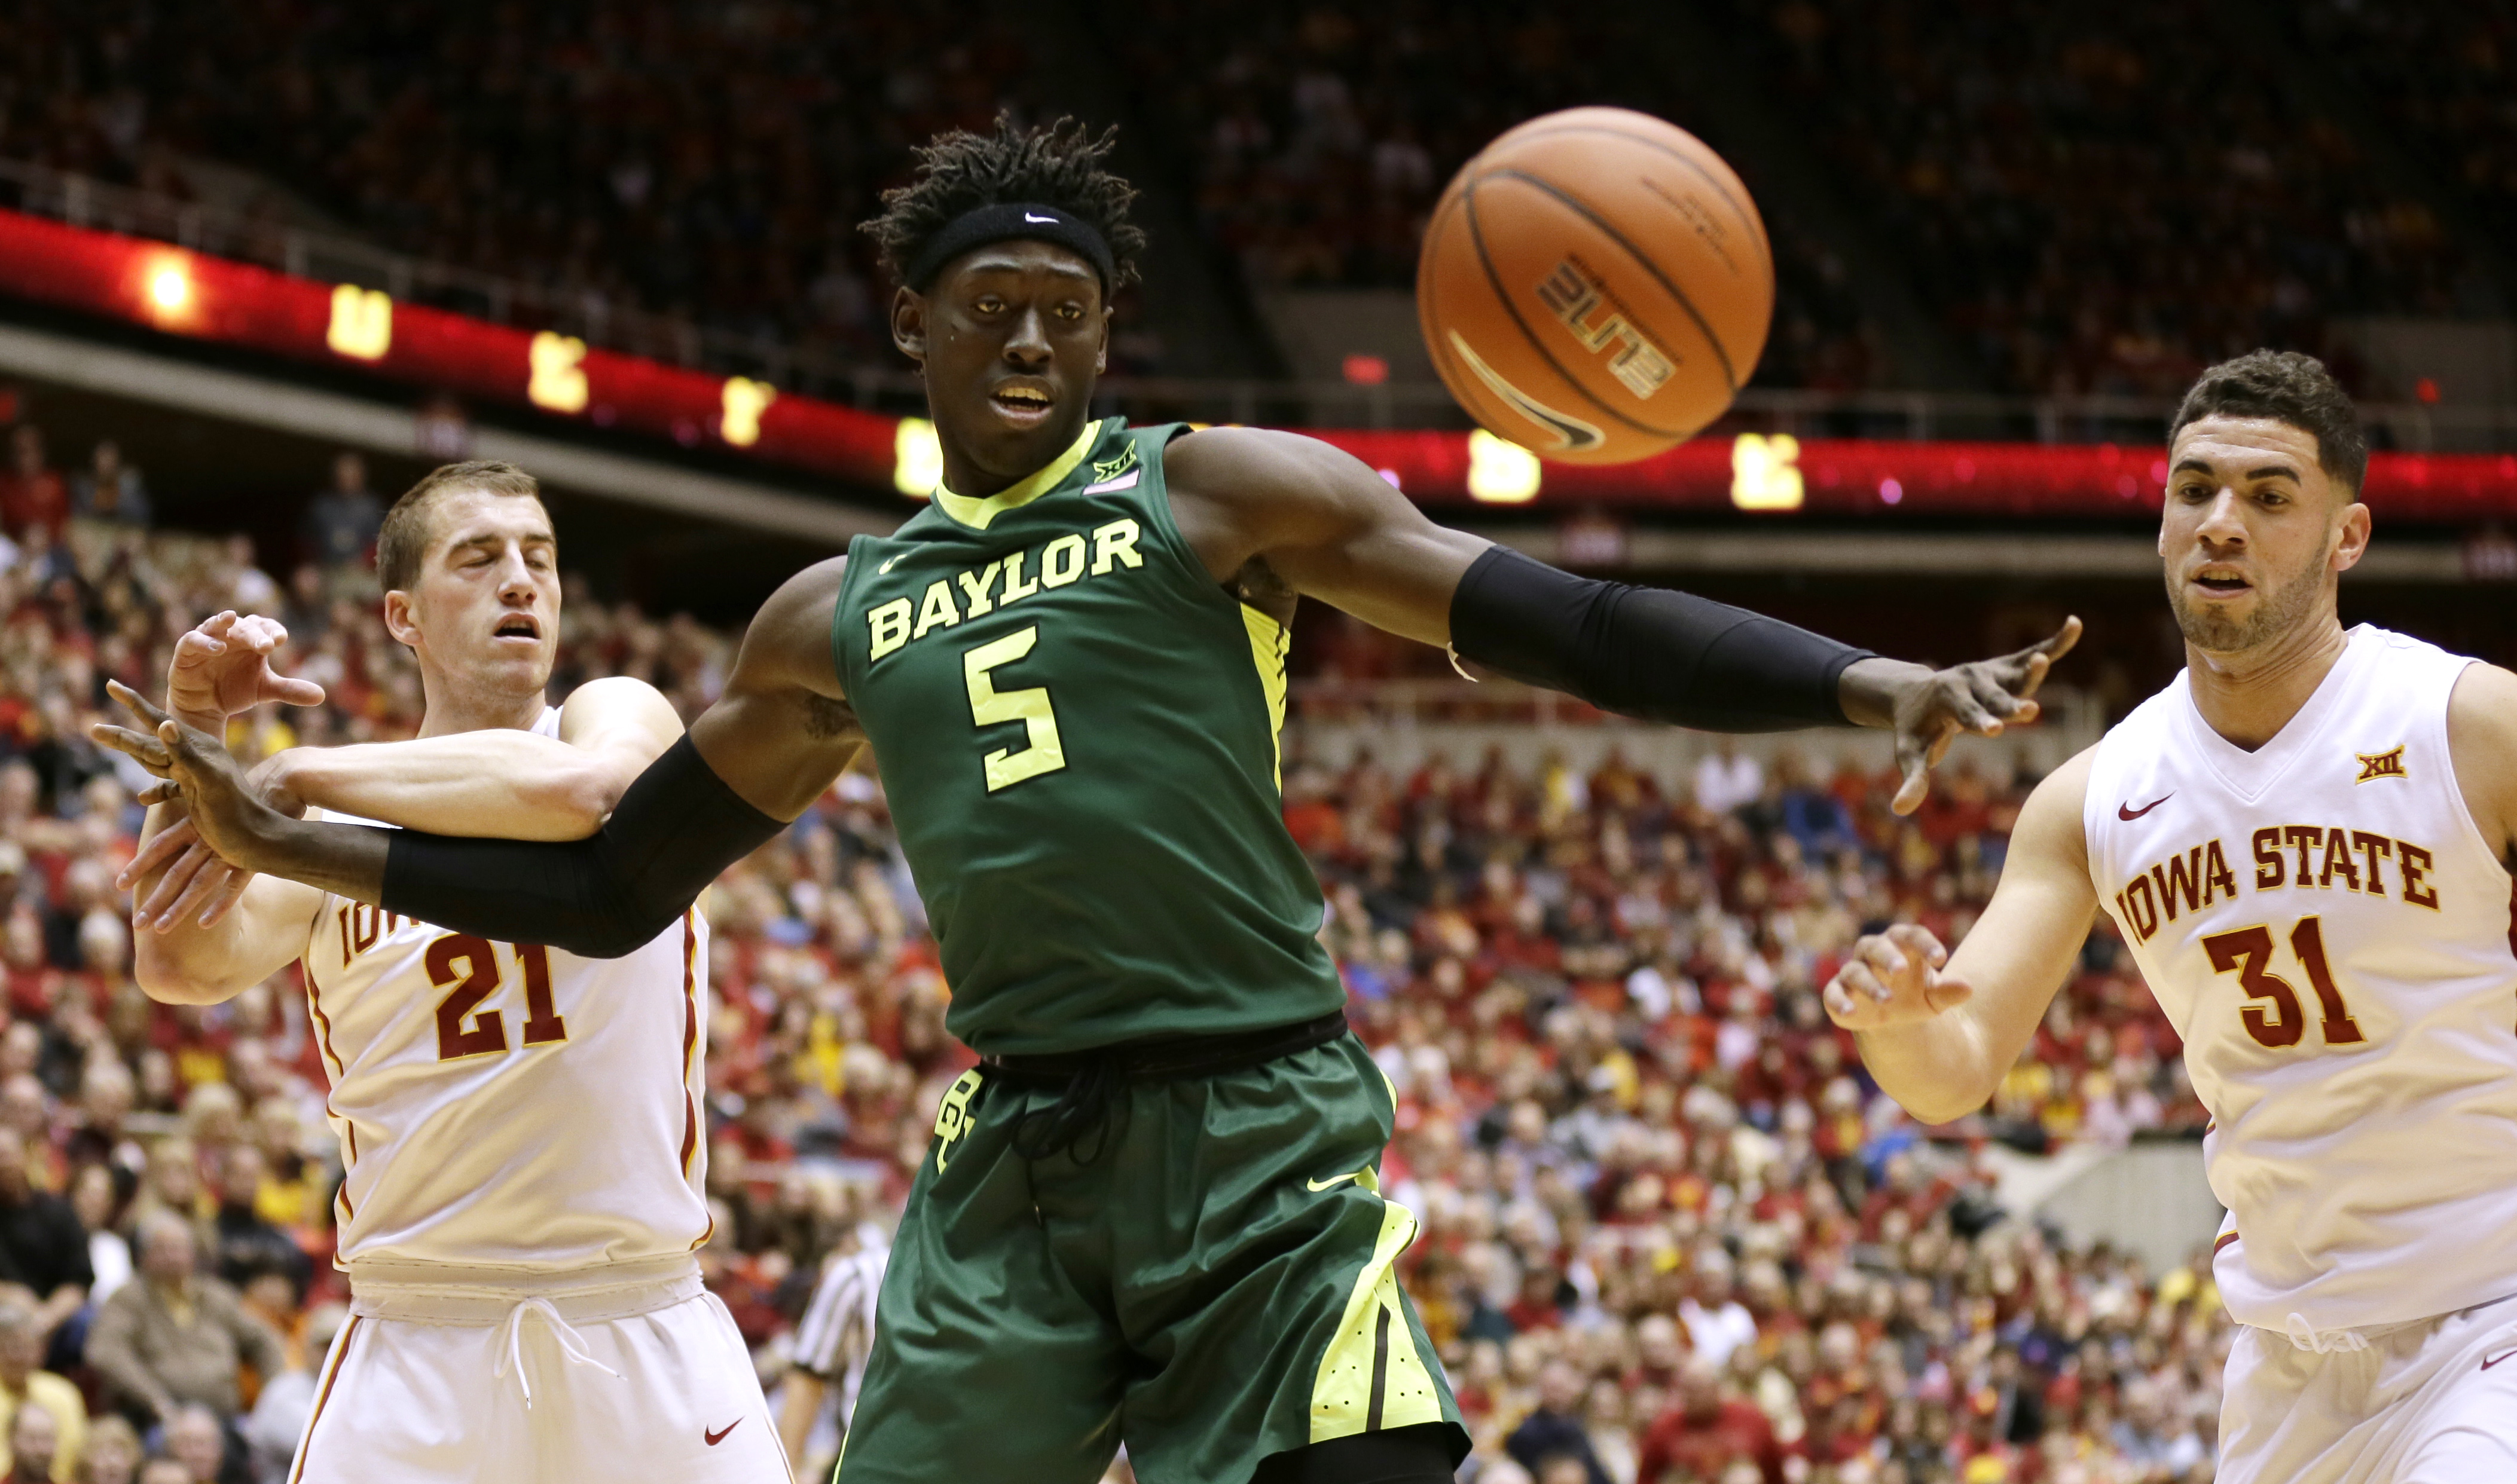 Baylor forward Johnathan Motley (5) fights for a loose ball with Iowa State's Matt Thomas, left, and Georges Niang, right, during the first half of an NCAA college basketball game, Saturday, Jan. 9, 2016, in Ames, Iowa. (AP Photo/Charlie Neibergall)